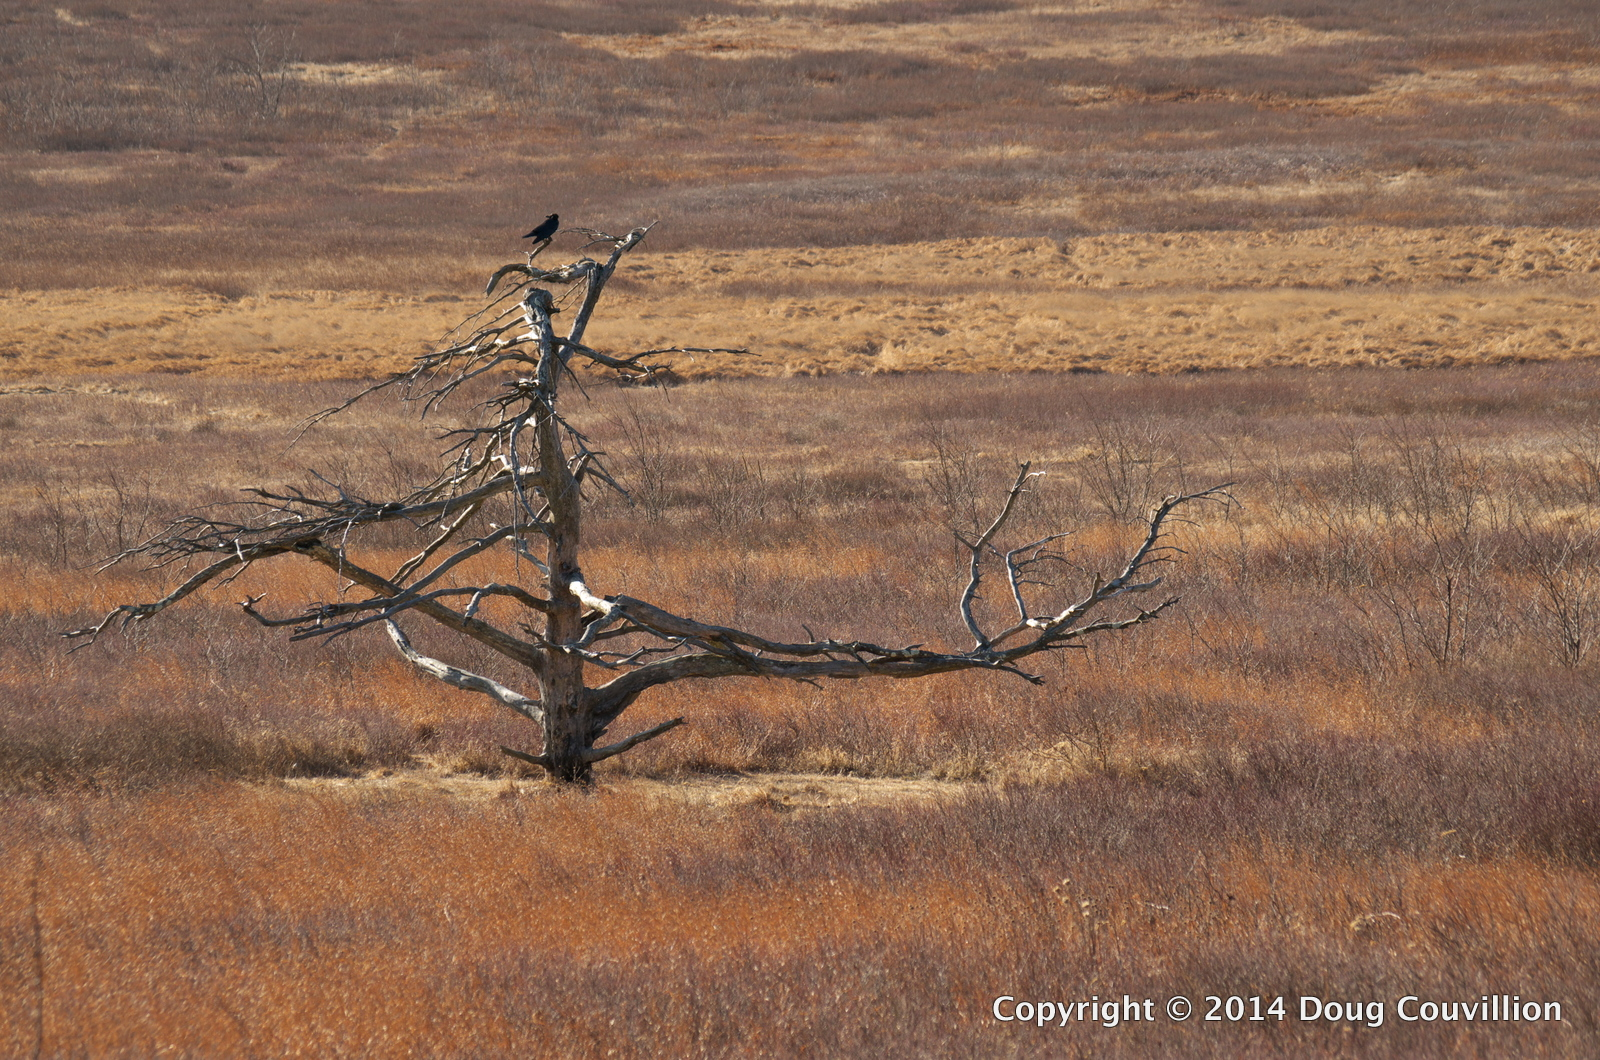 photograph of a bare tree in a meadow with a crow sitting on top of it